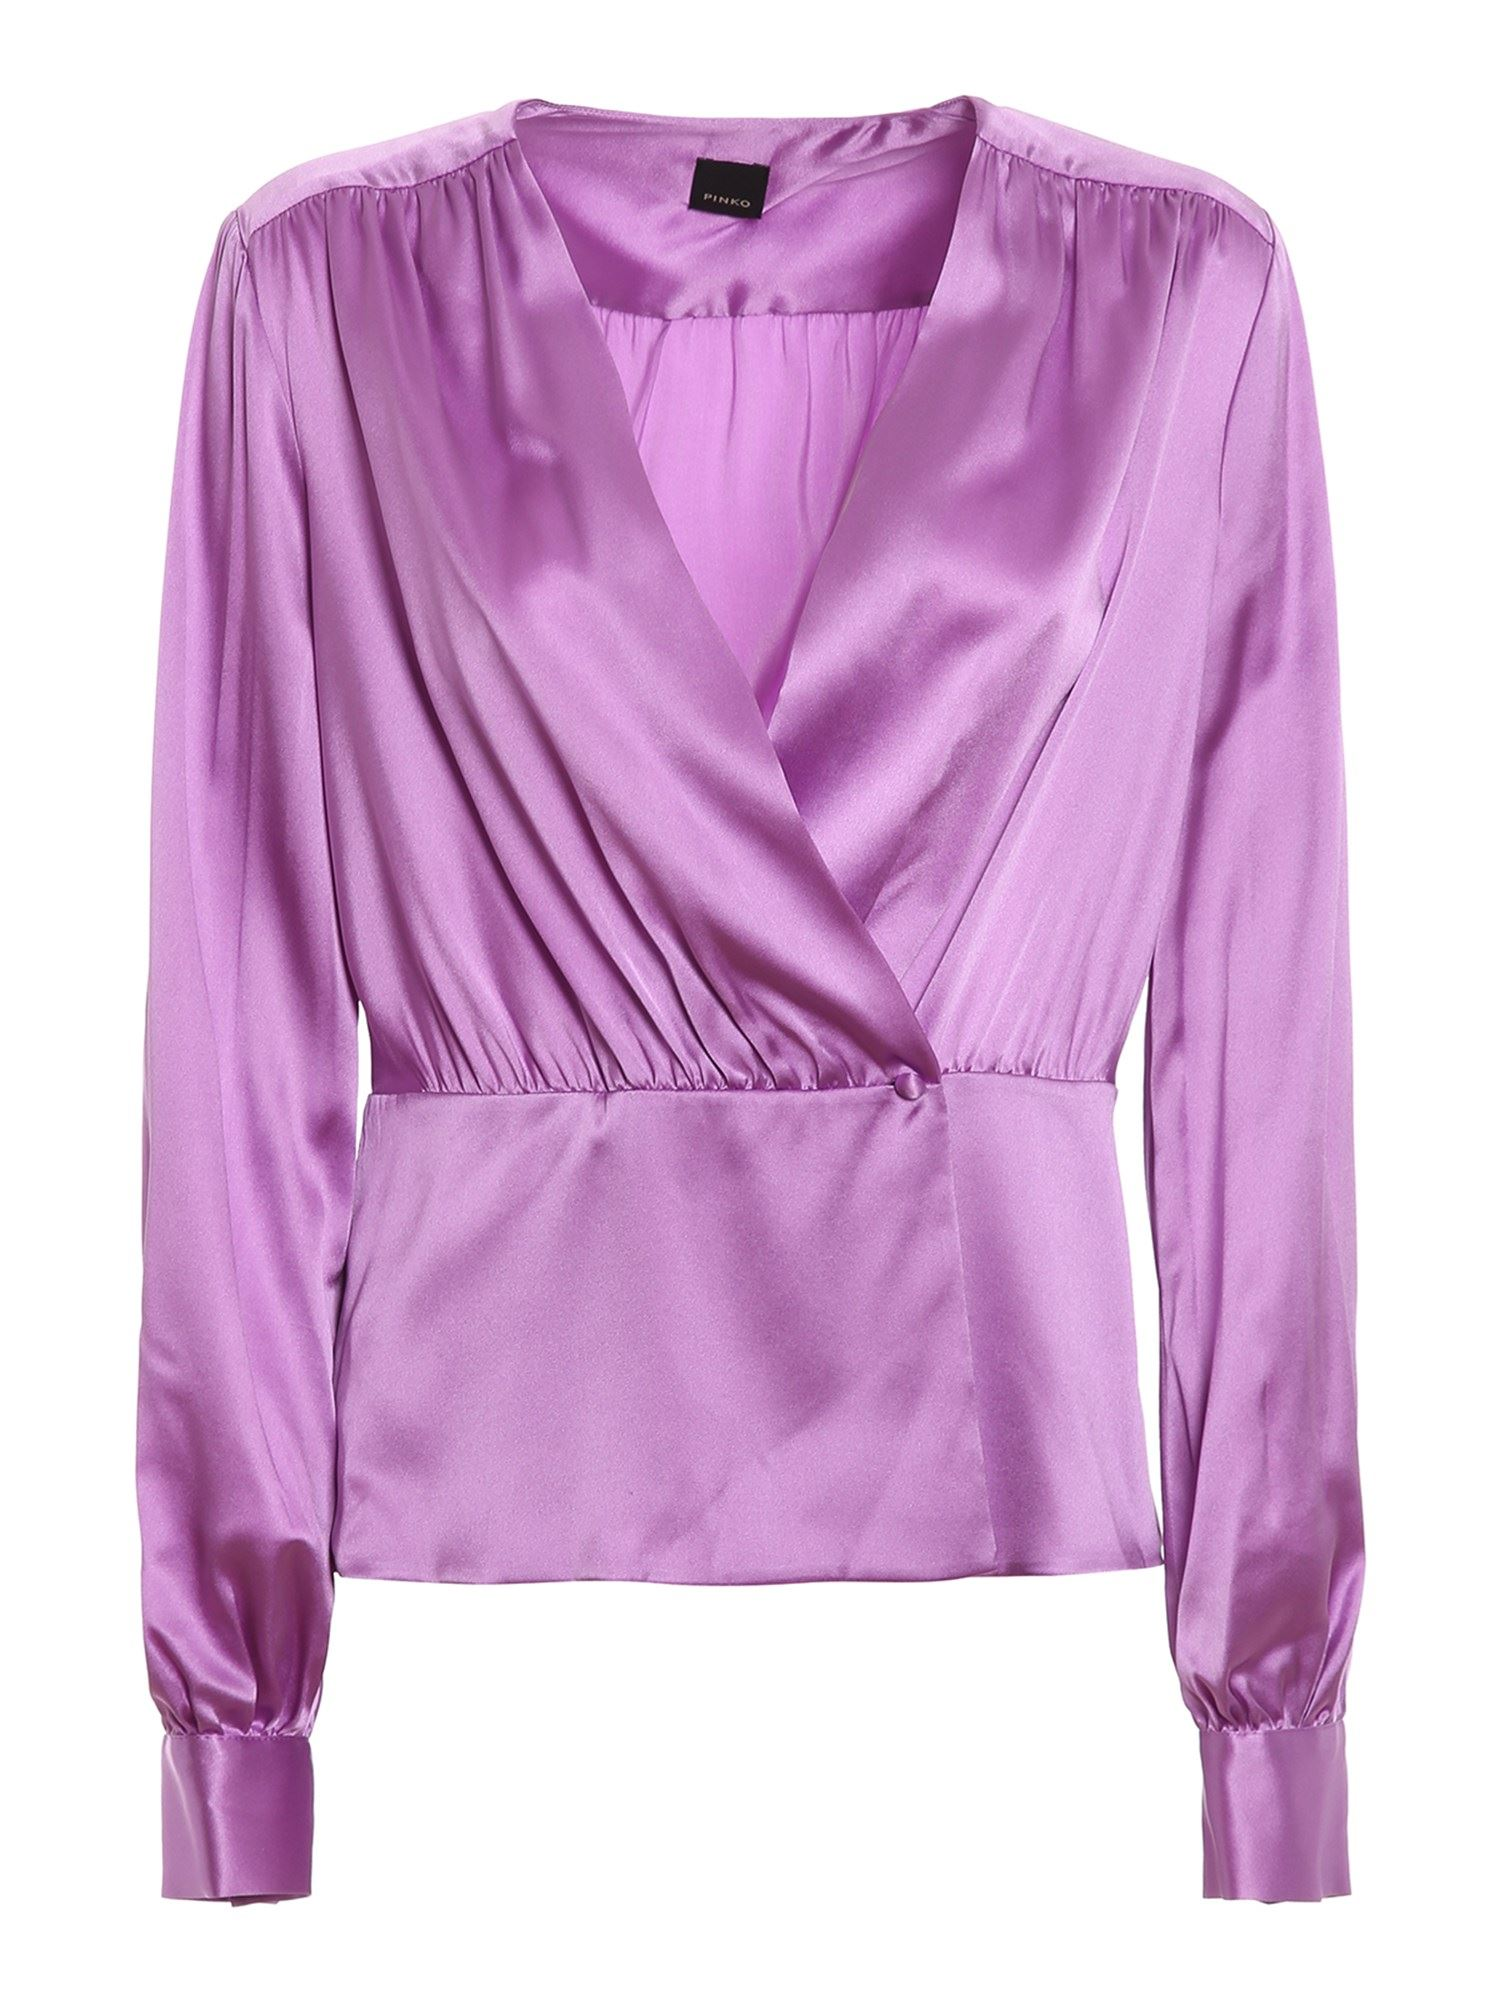 Pinko Blouses PINKO LIMITATO BLOUSE IN LILAC